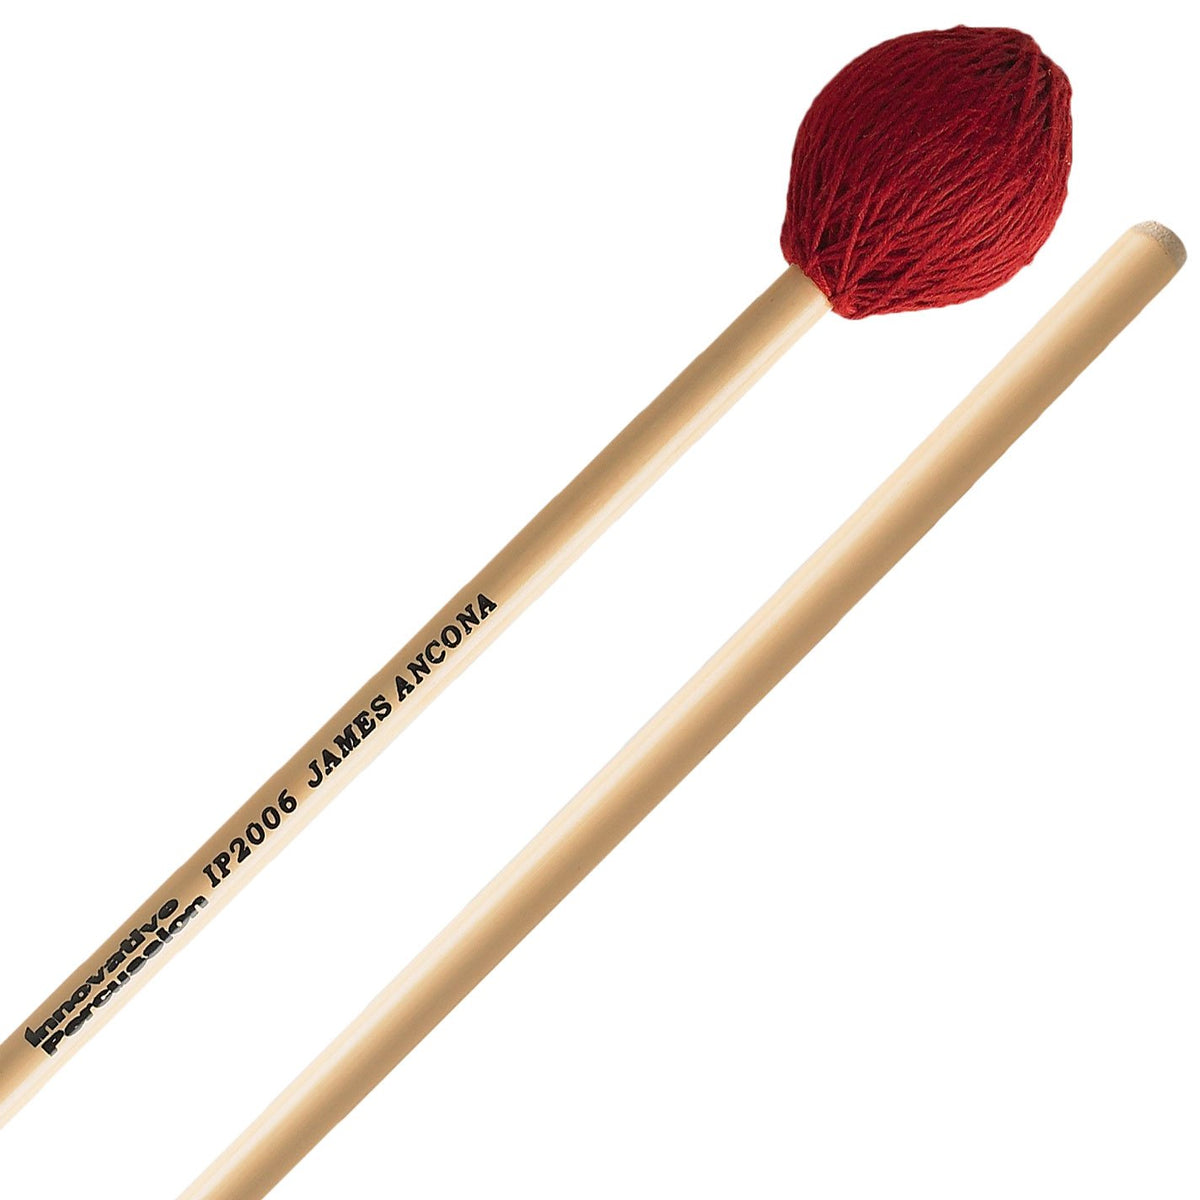 Innovative Percussion - James Ancona Series Marching Marimba/Vibraphone Mallets-Percussion-Innovative Percussion-IP2006: Medium Hard Vibraphone/Marimba-Music Elements